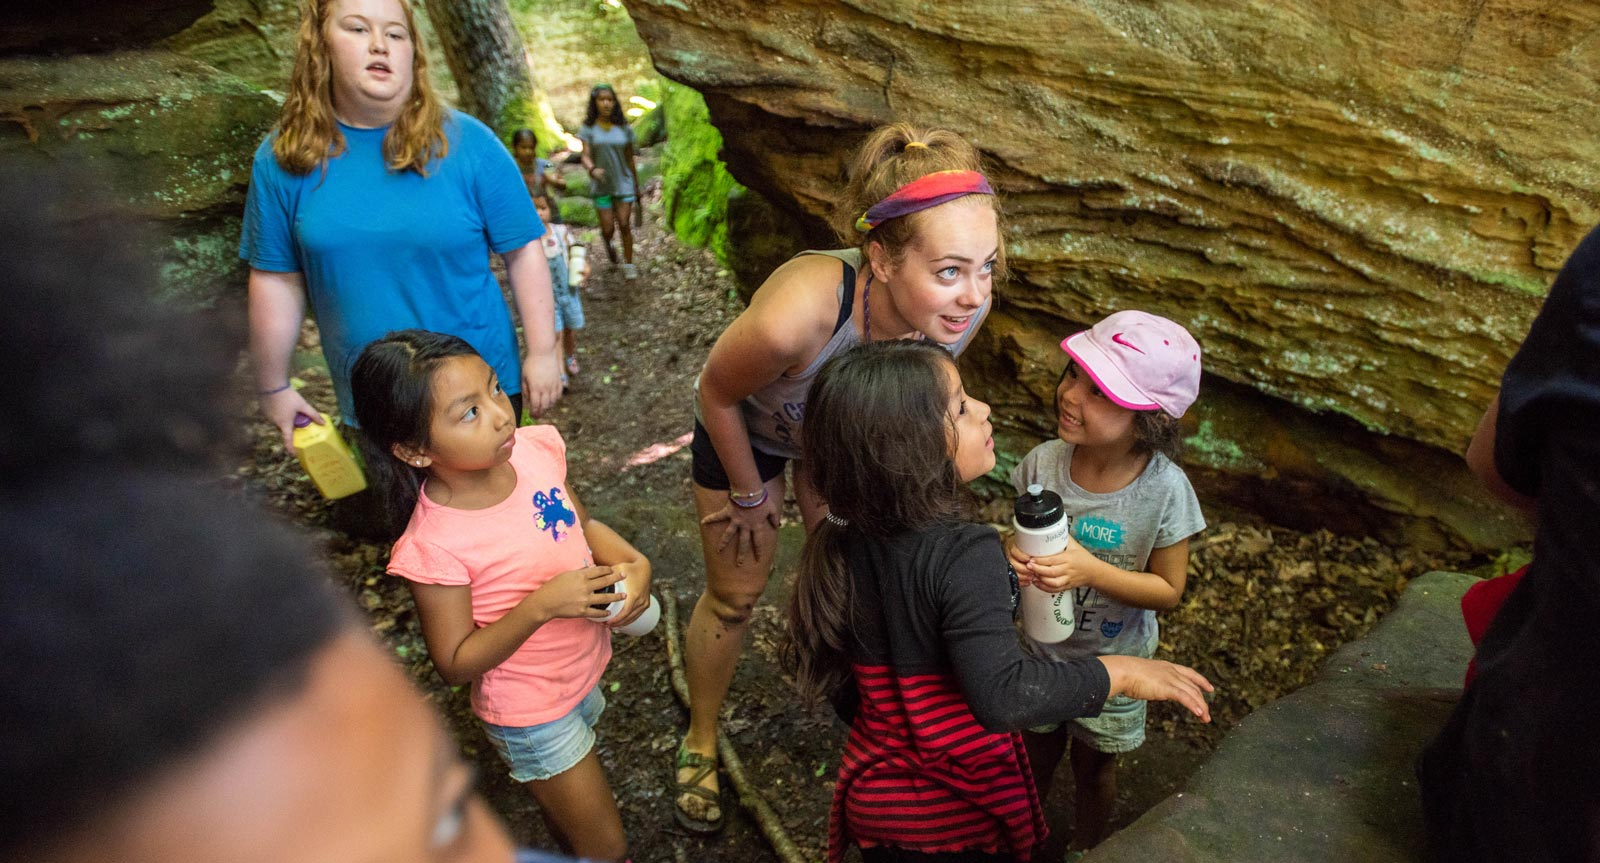 An Ohio State student talks to two children during an outdoors excursion.